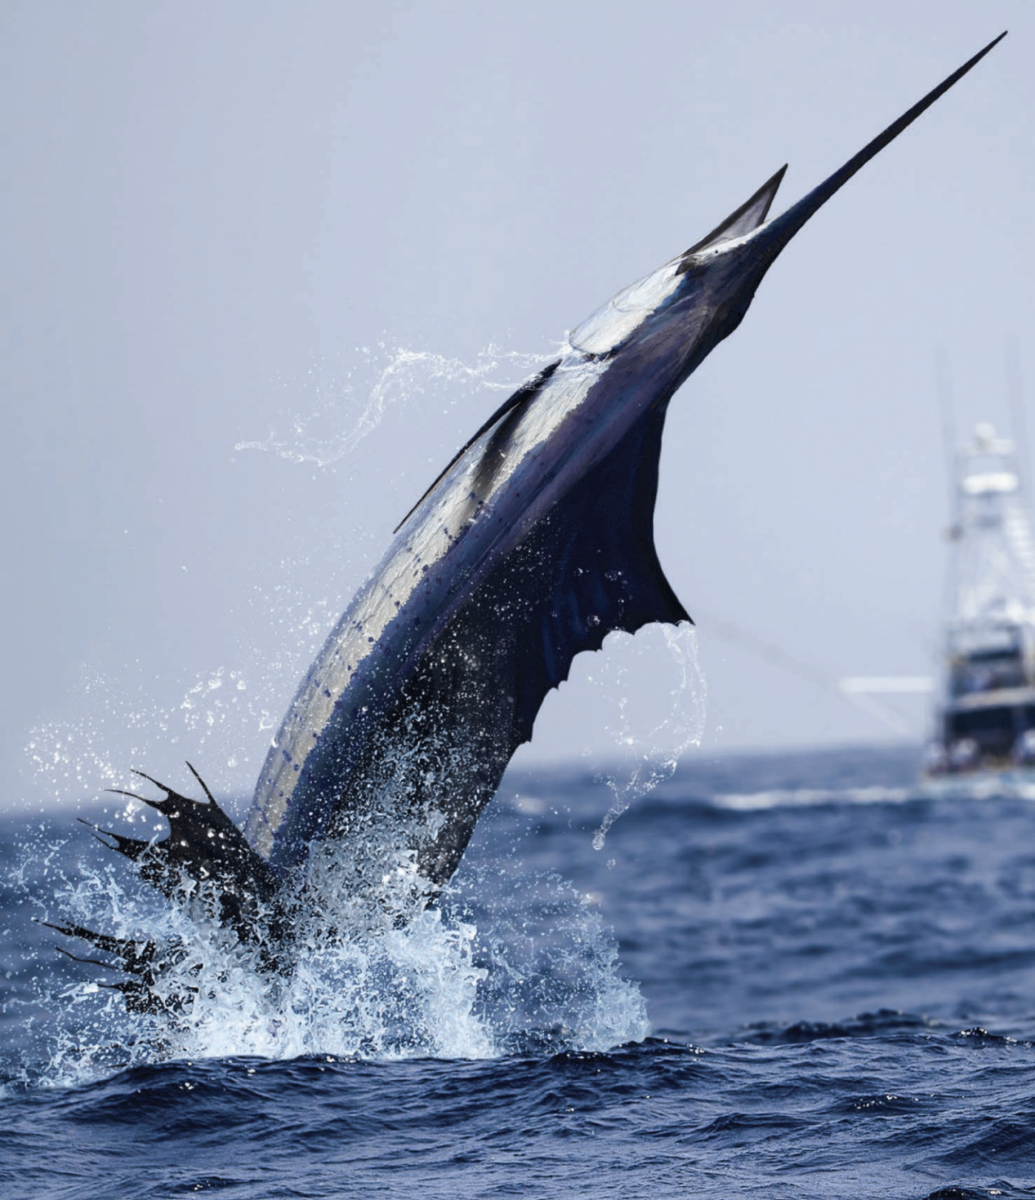 The best things about sailfish are their beauty, accessibility and tendency to jump.